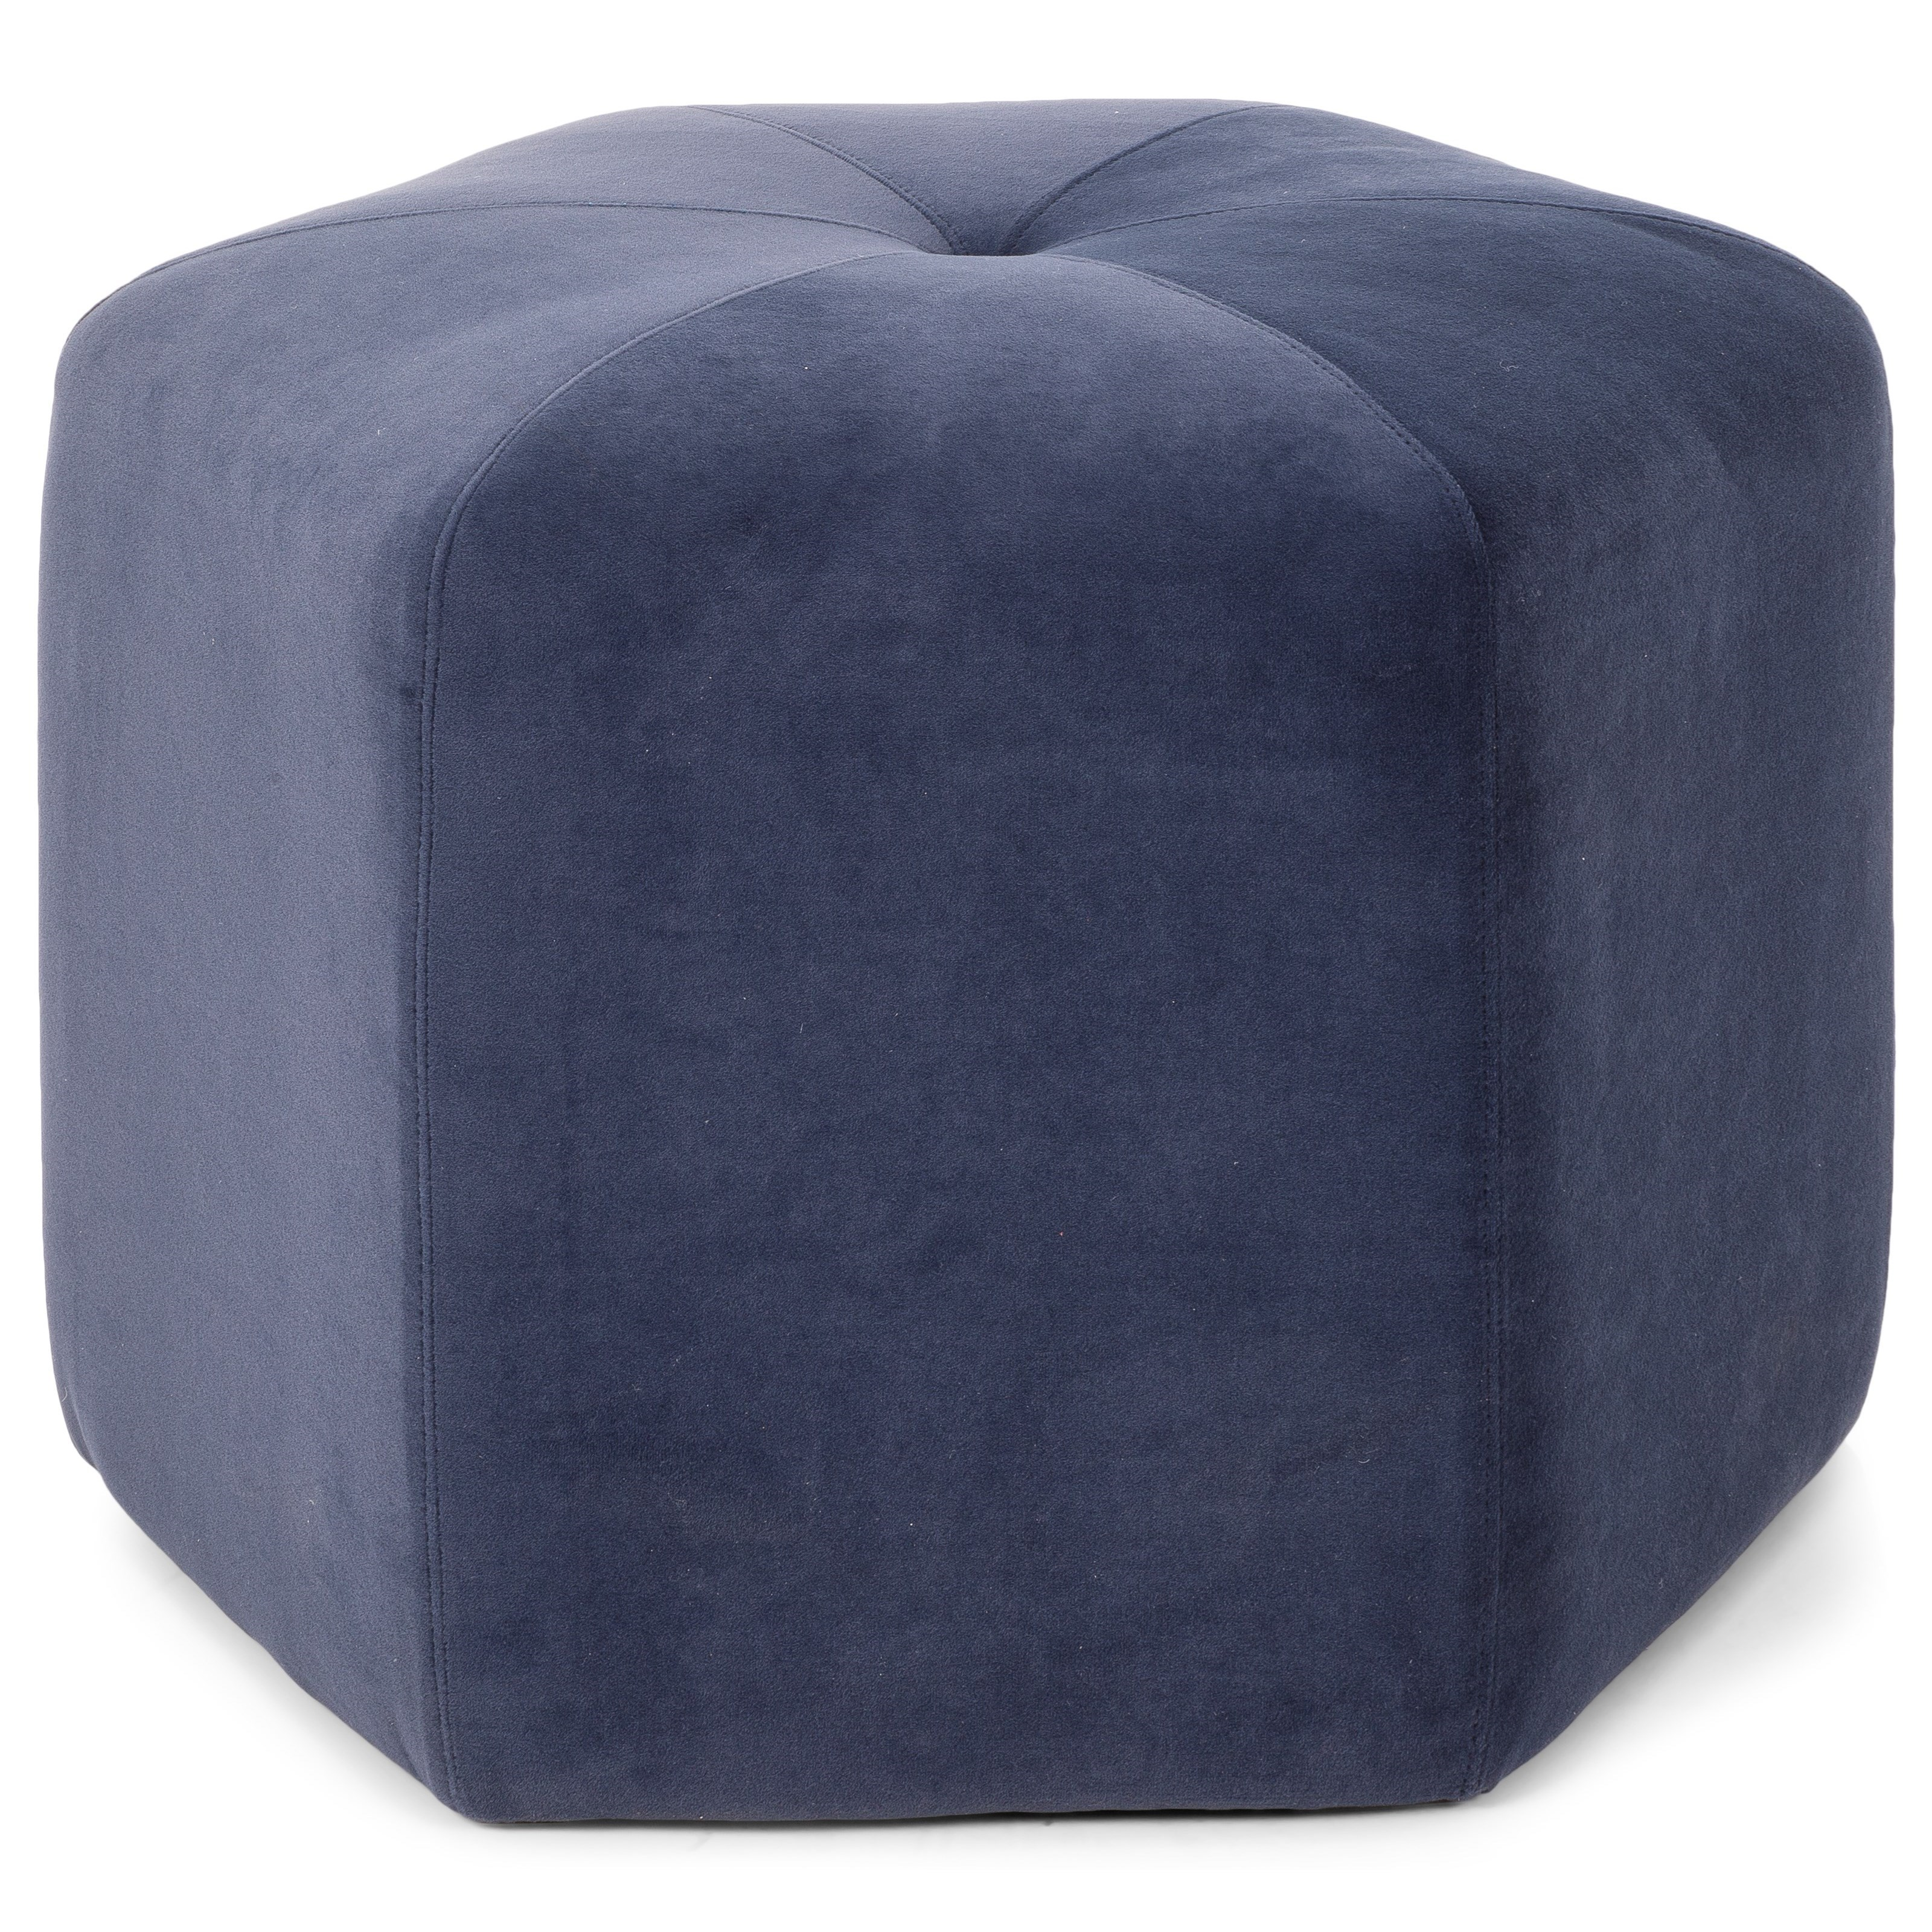 2931 Ottoman by Decor-Rest at Rooms for Less